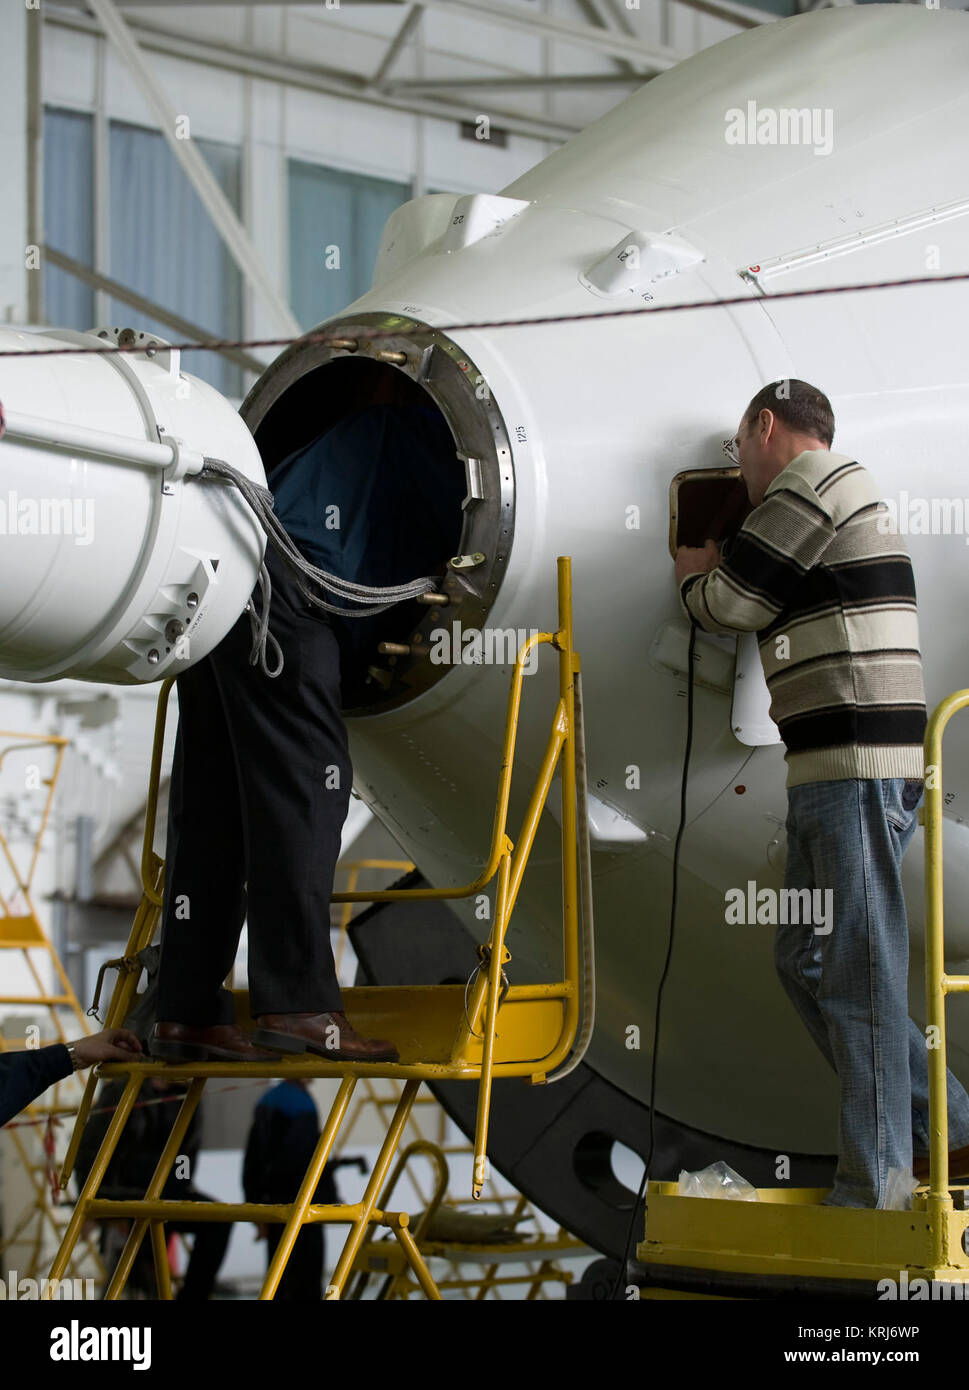 Russian engineers prepare the Soyuz TMA-14 spacecraft and boosters for mating Monday, March 23, 2009 at the Baikonur - Stock Image